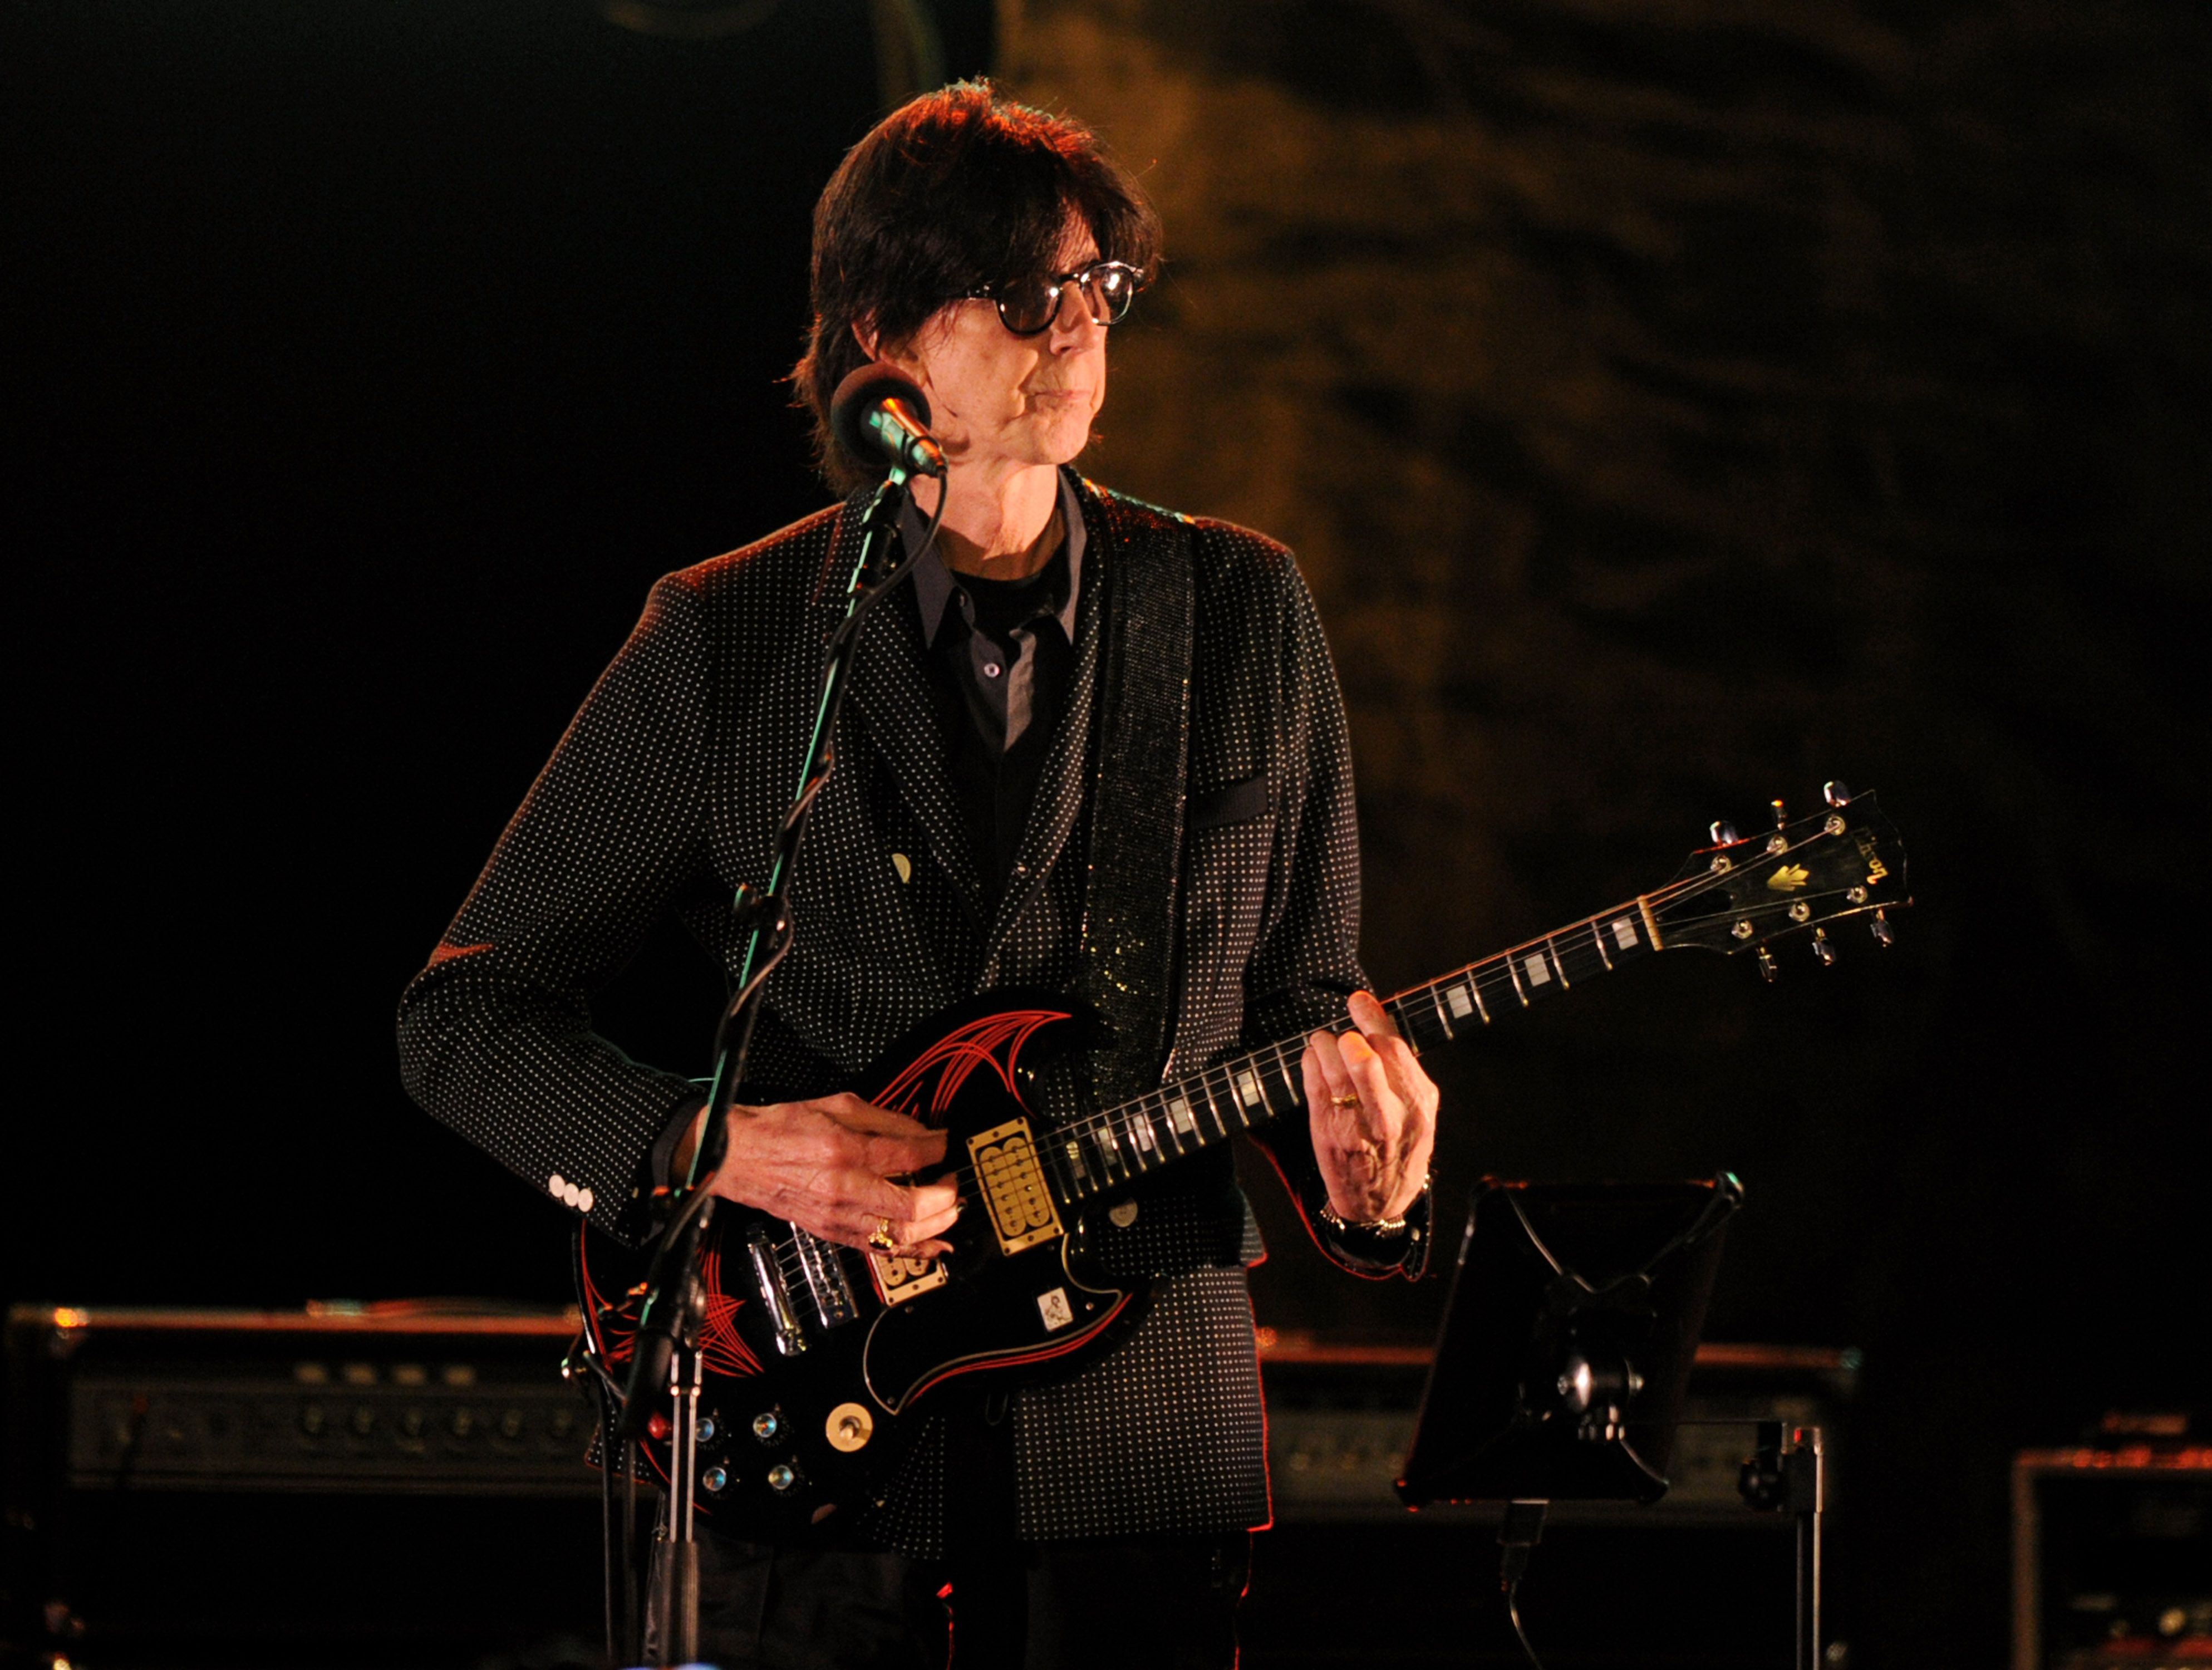 The cause of death for Ric Ocasek, sweet final drawing revealed